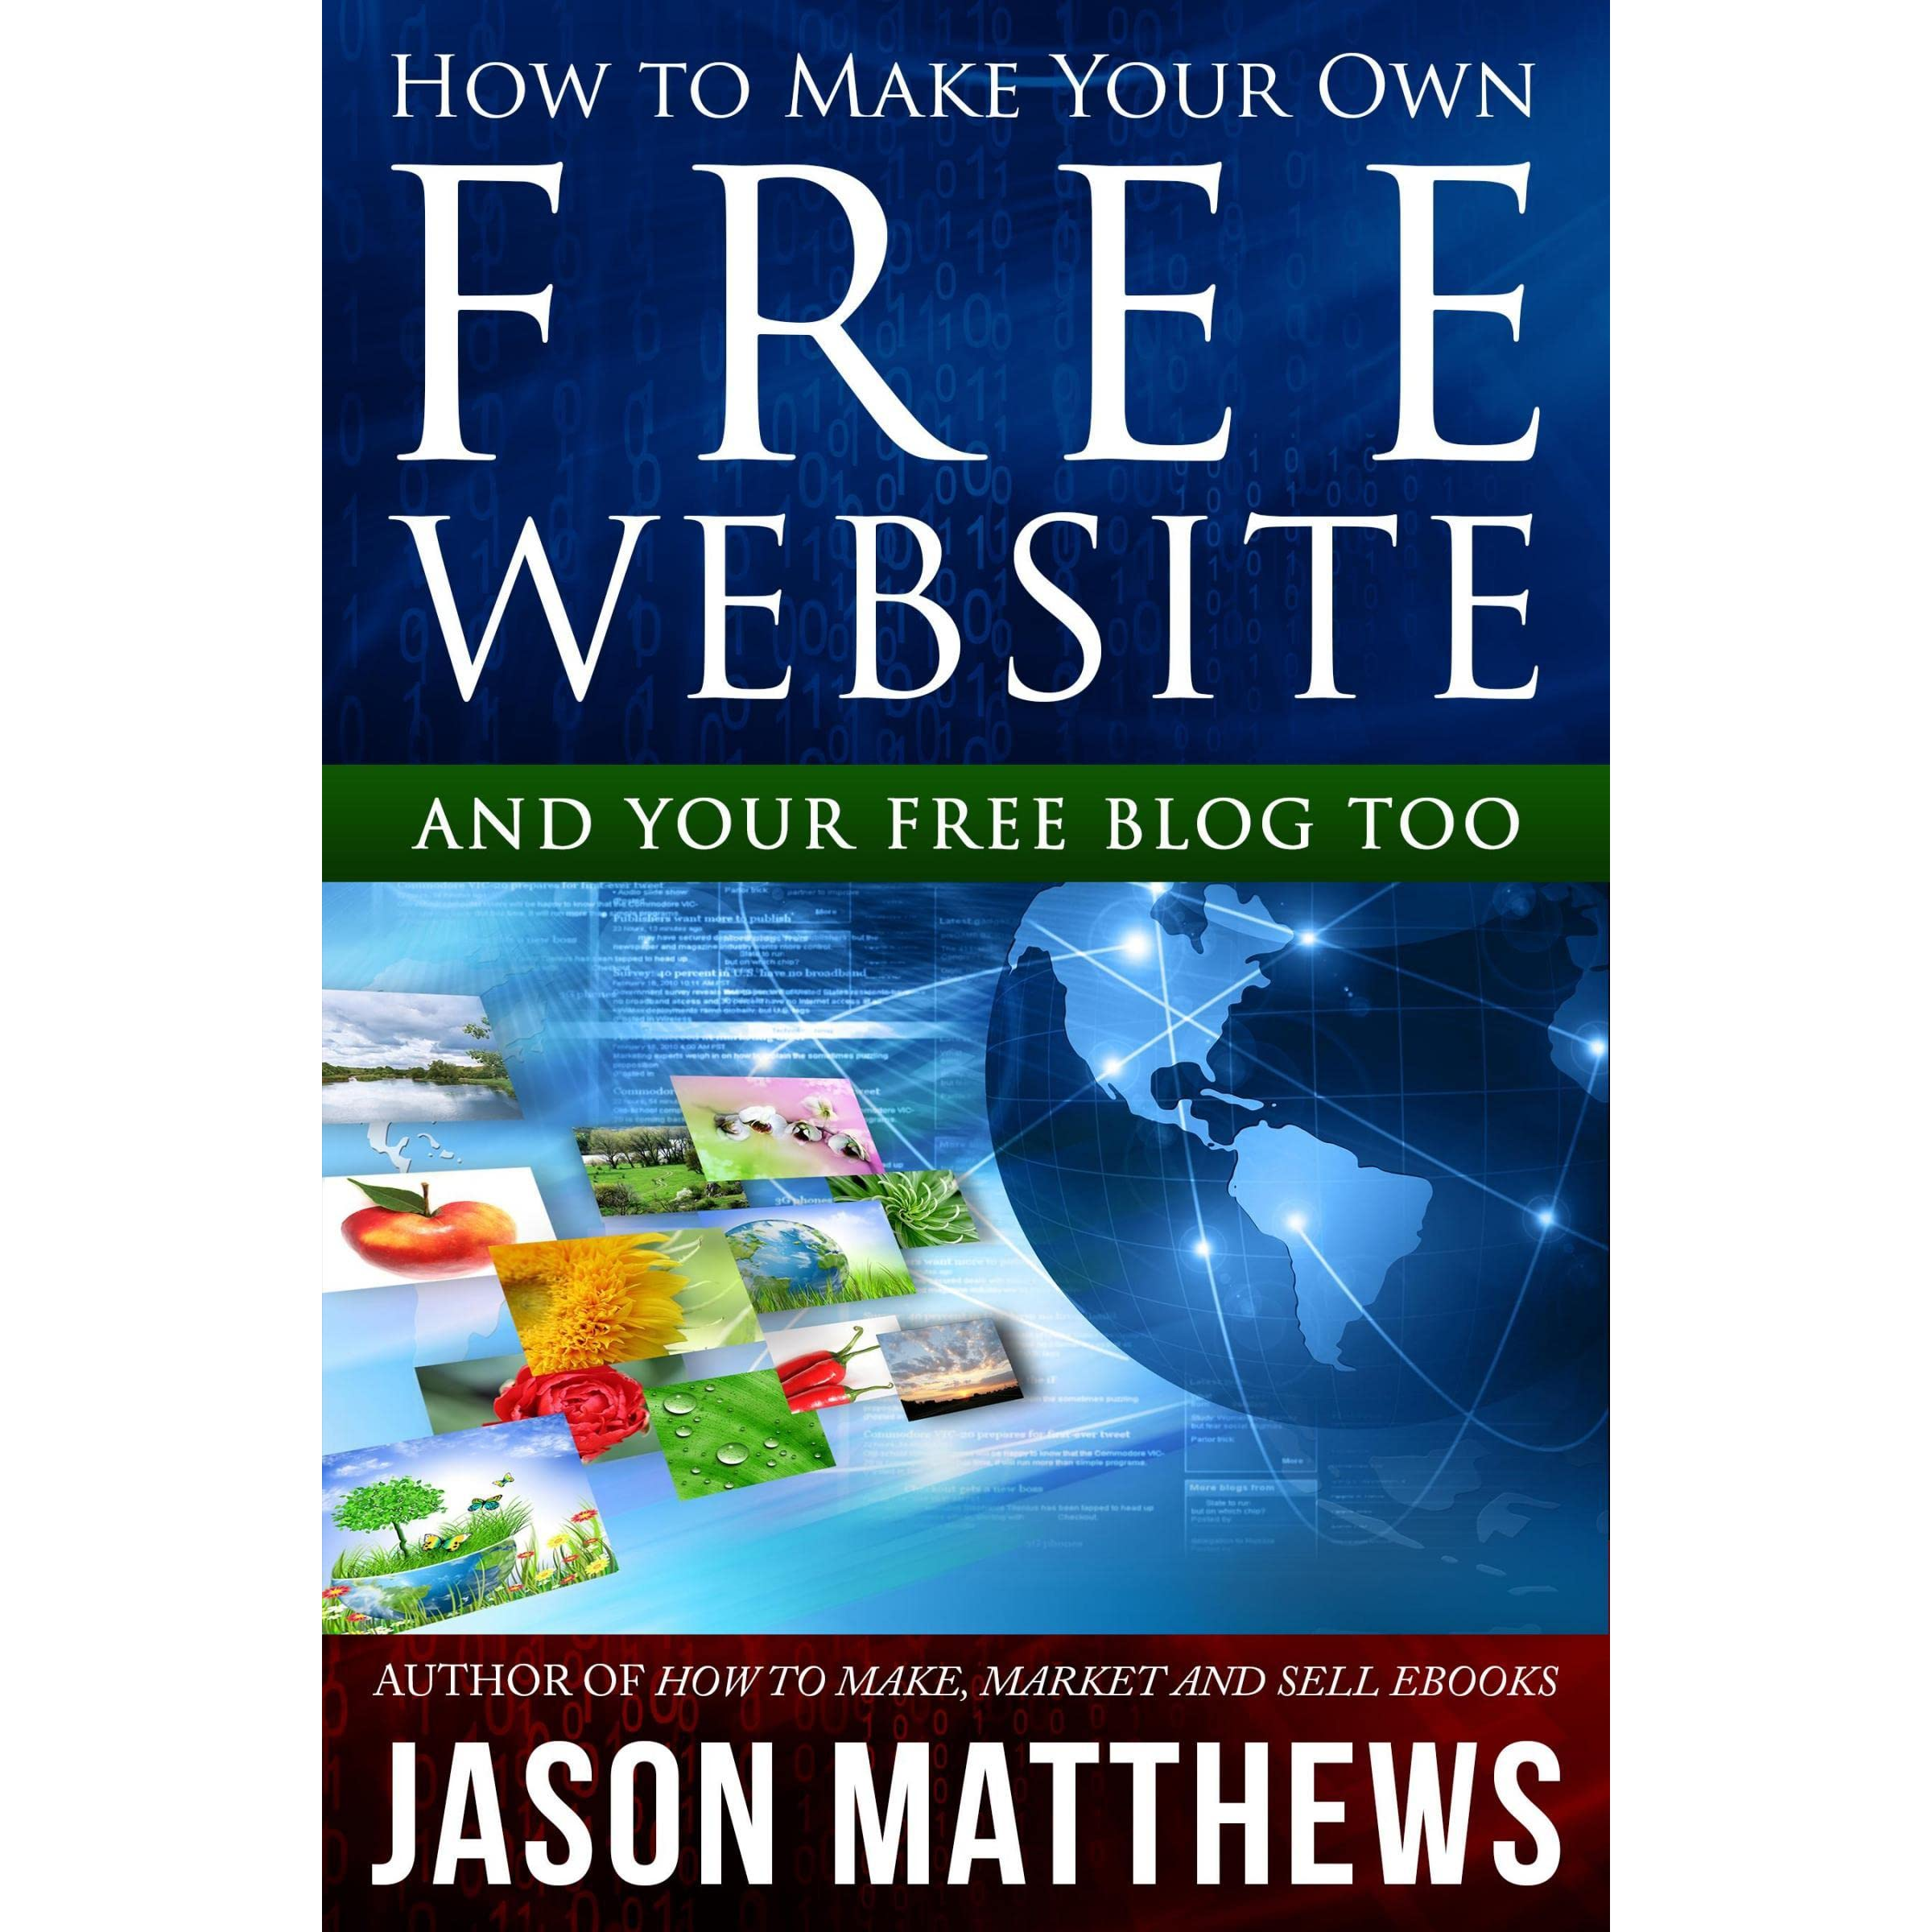 How To Make Your Own Free Website By Jason Matthews